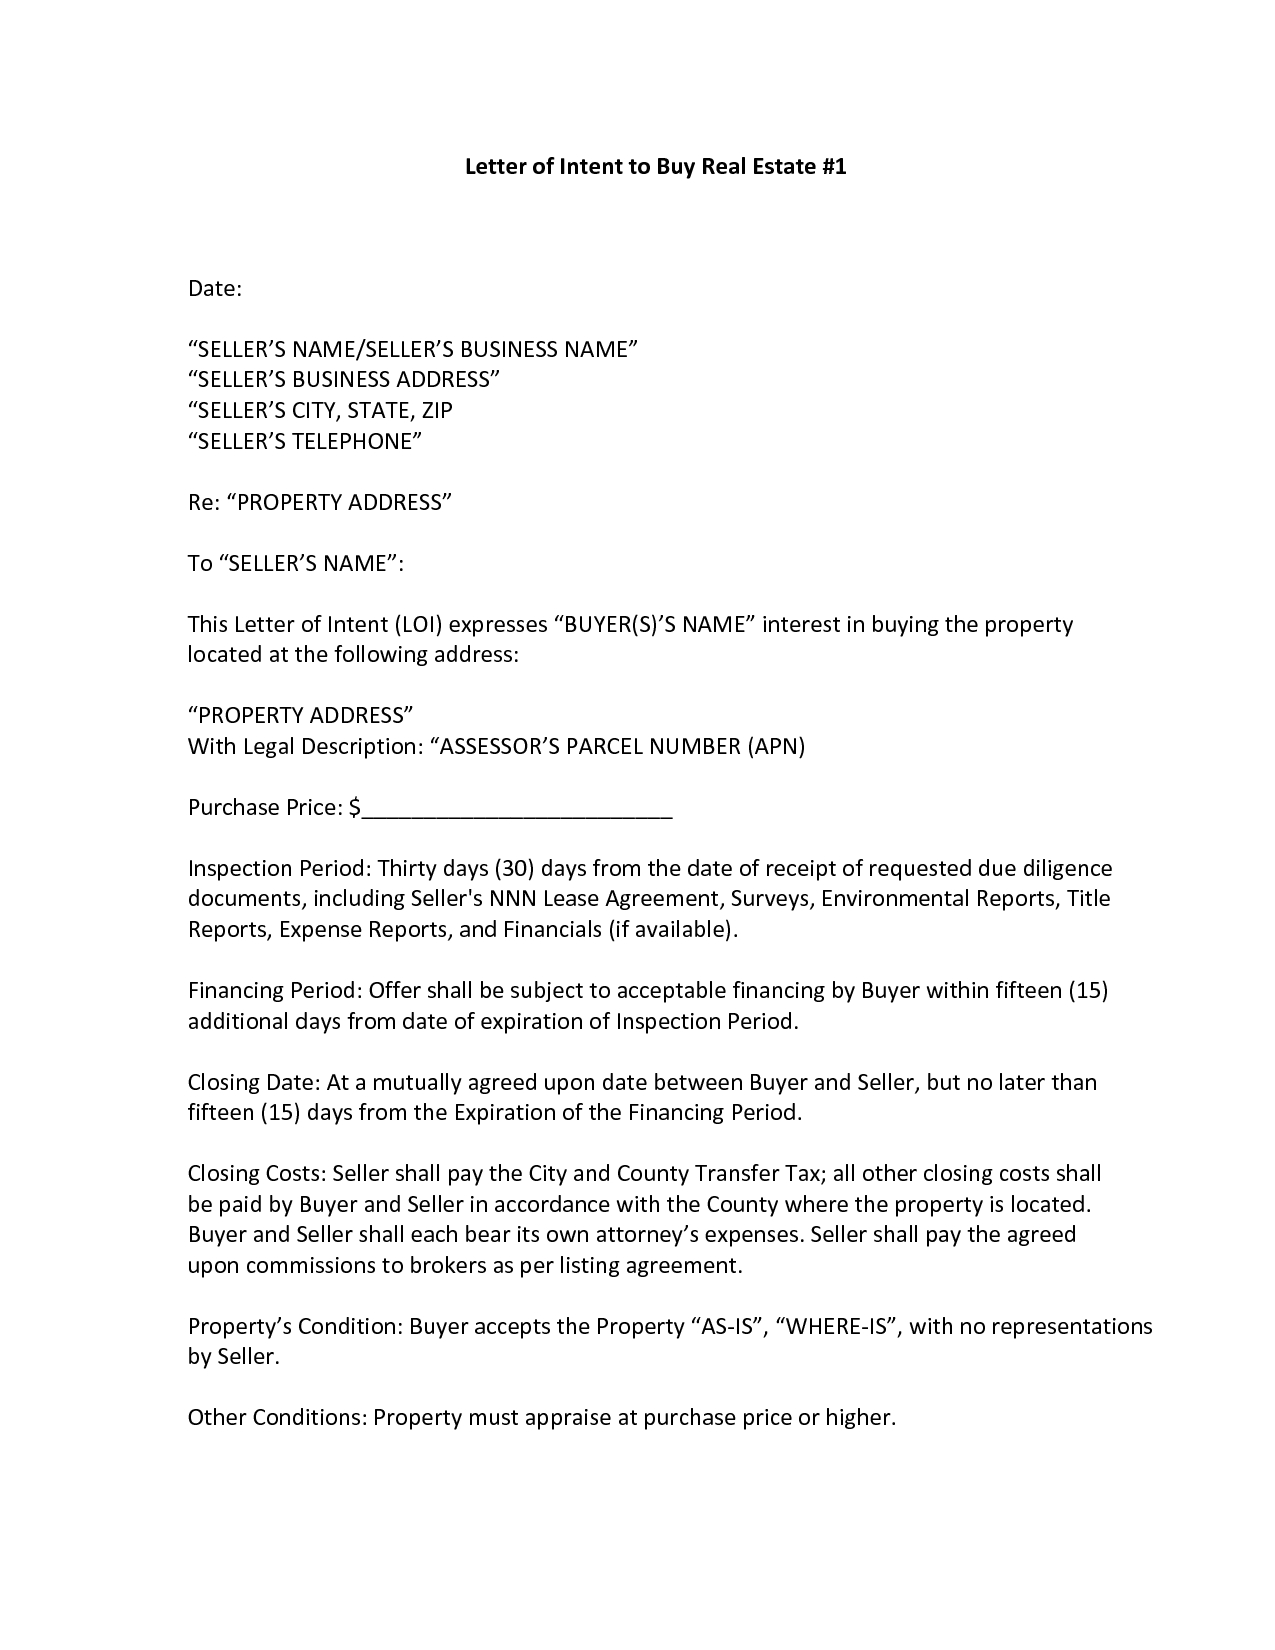 Letter Of Offer to Purchase Property Template - Sample Letter Intent Purchase Real Estate New Property Fer